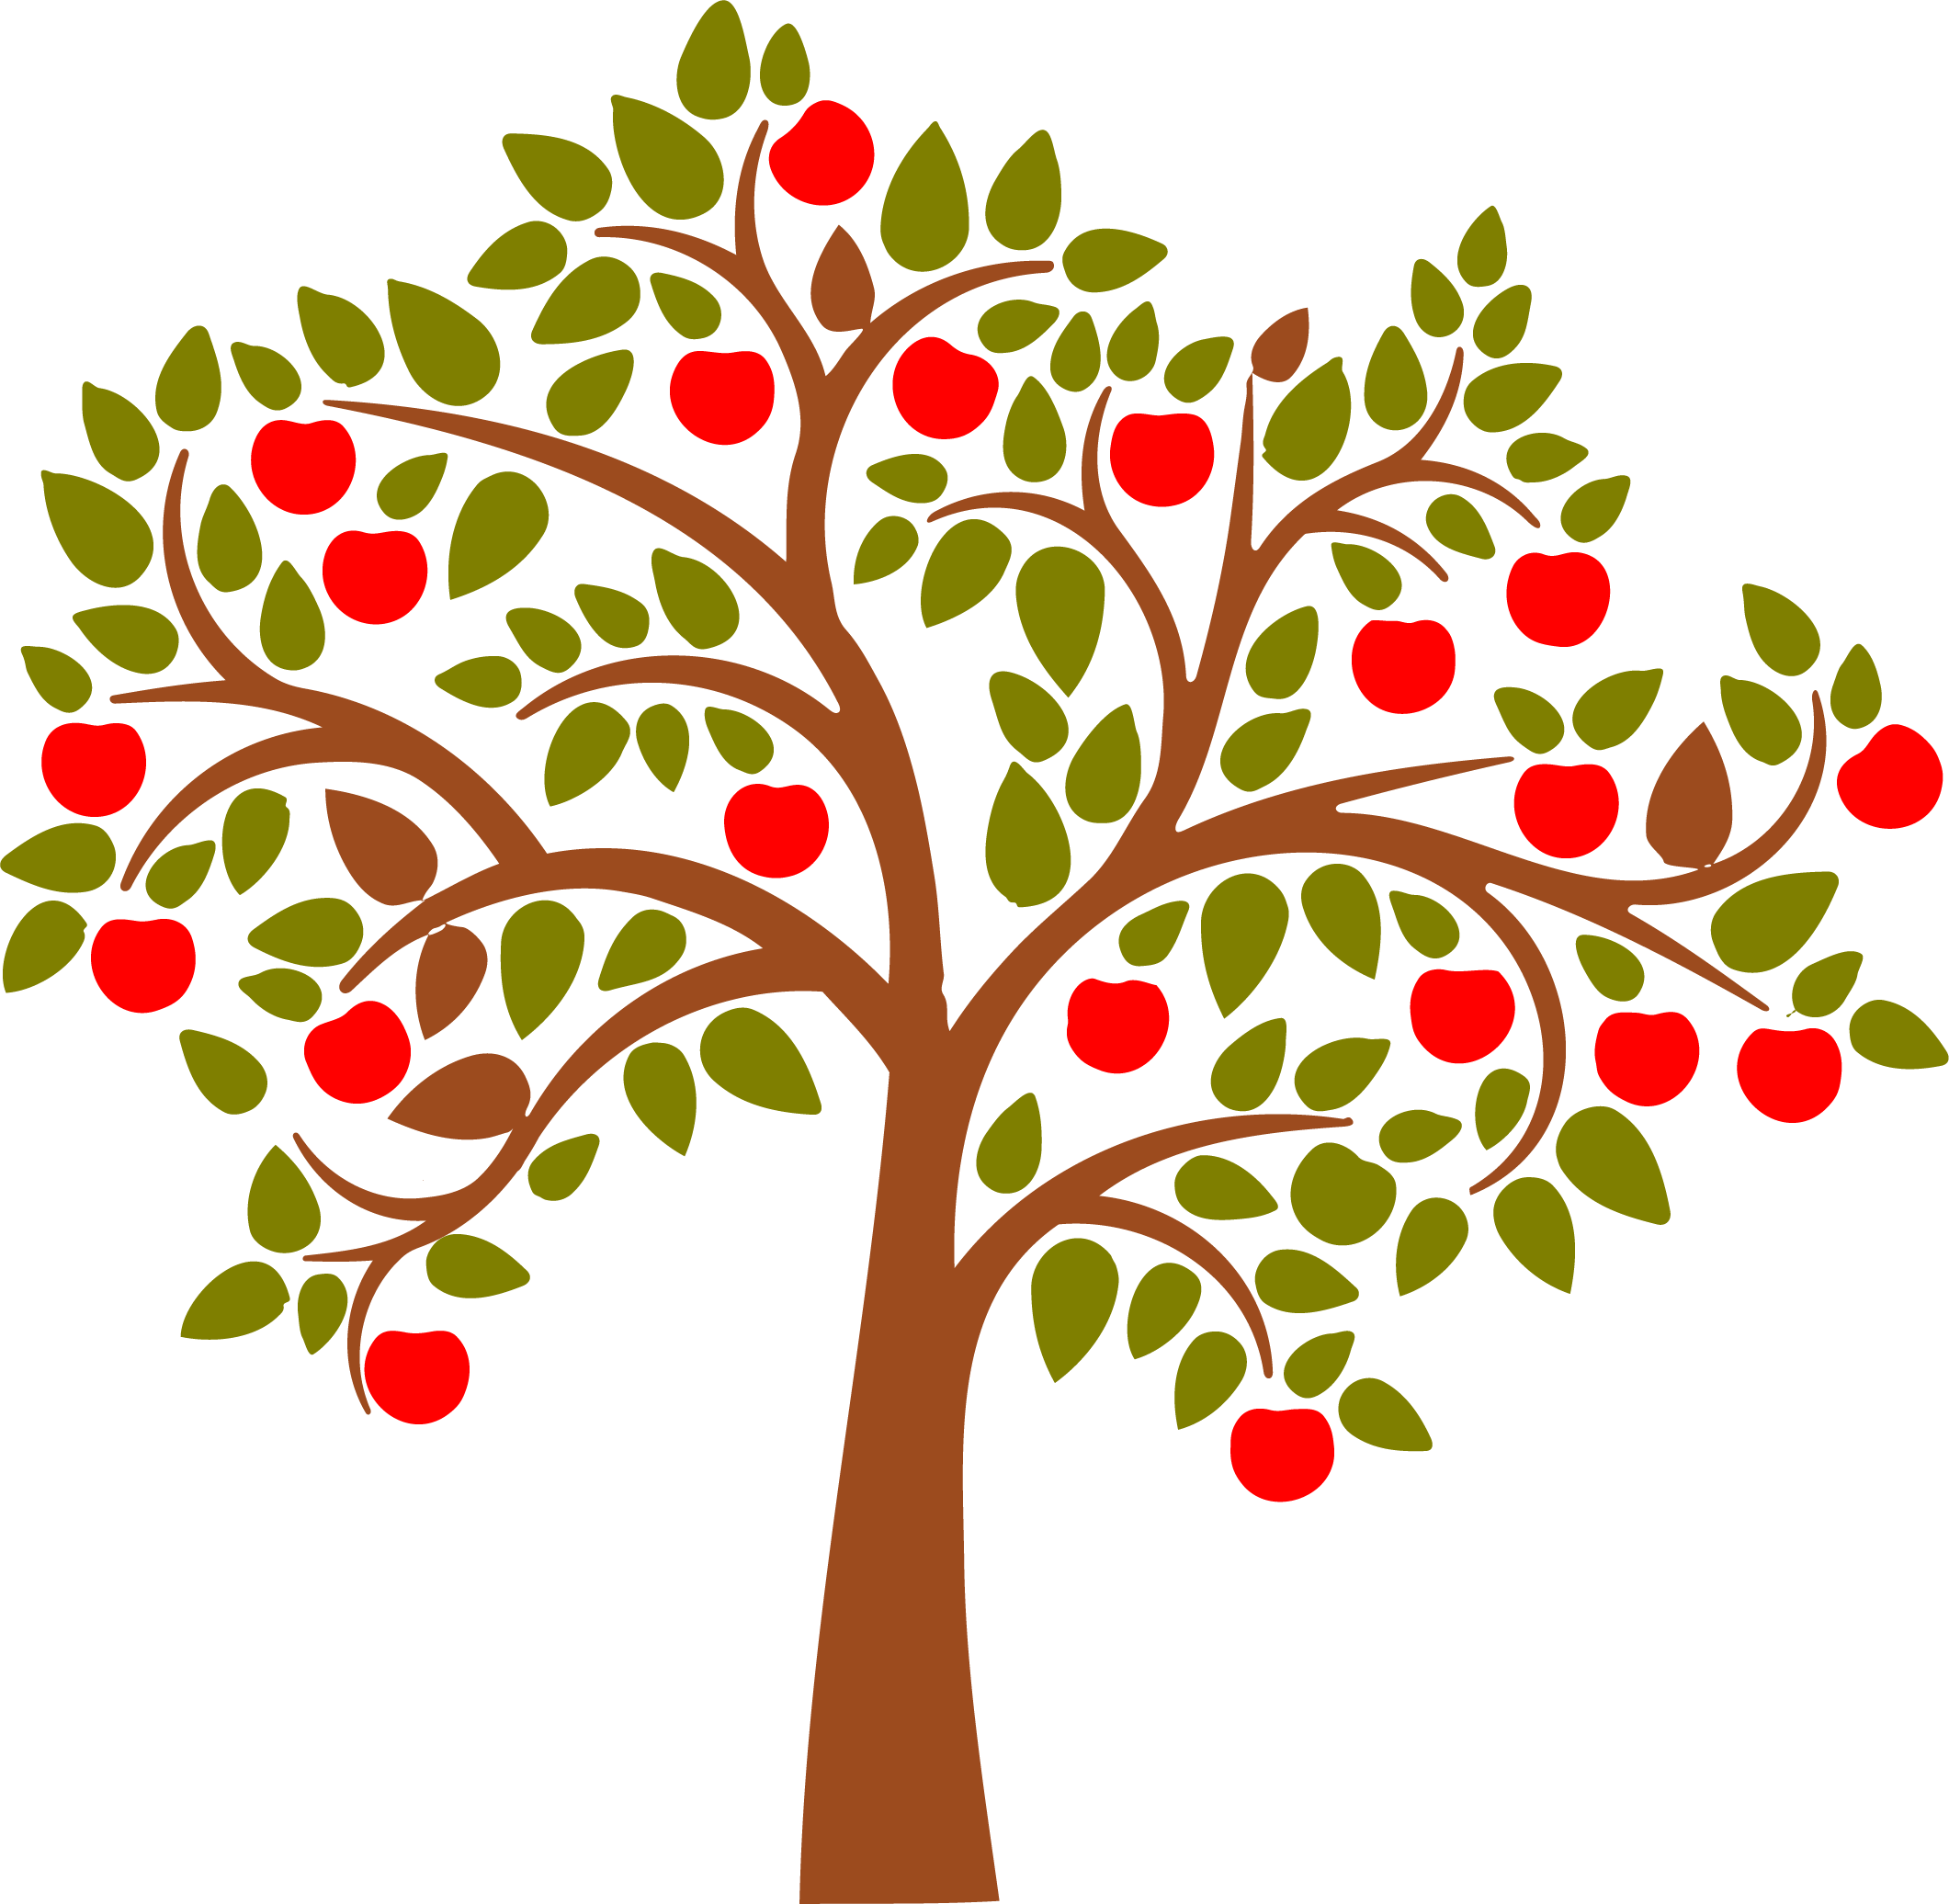 Apple tree wall decal. Clipart trees romantic